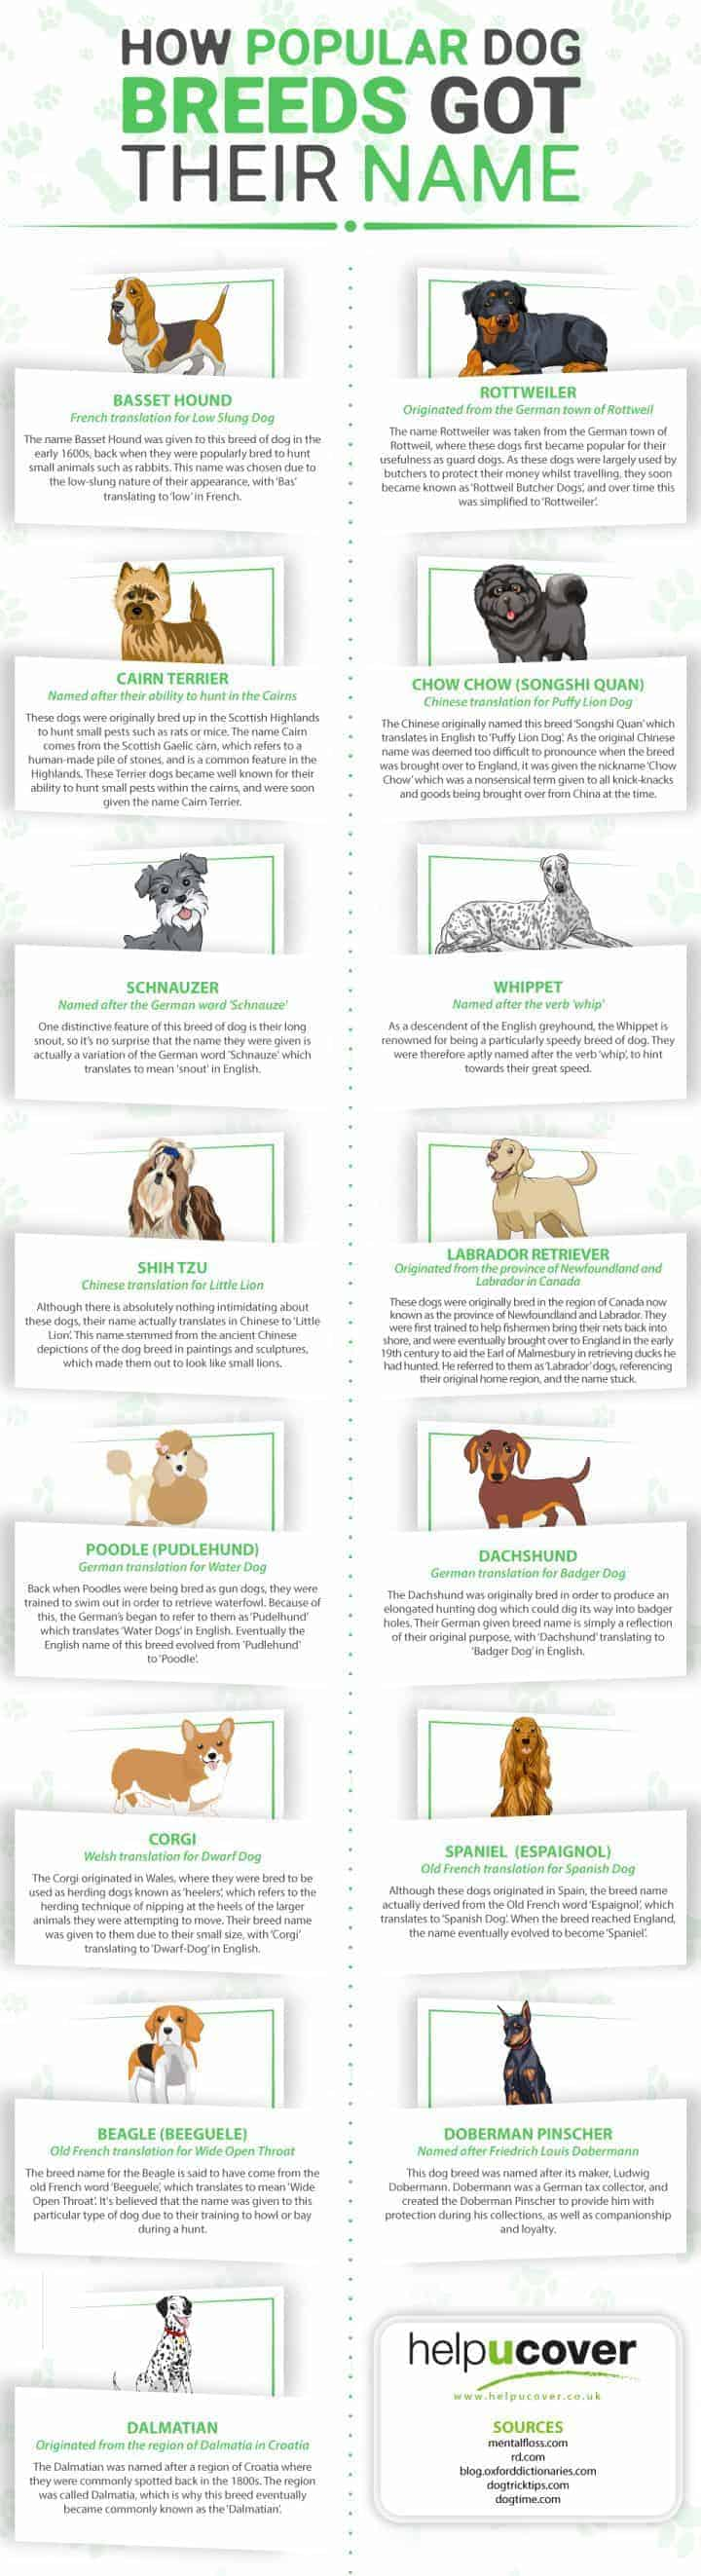 dog breed names